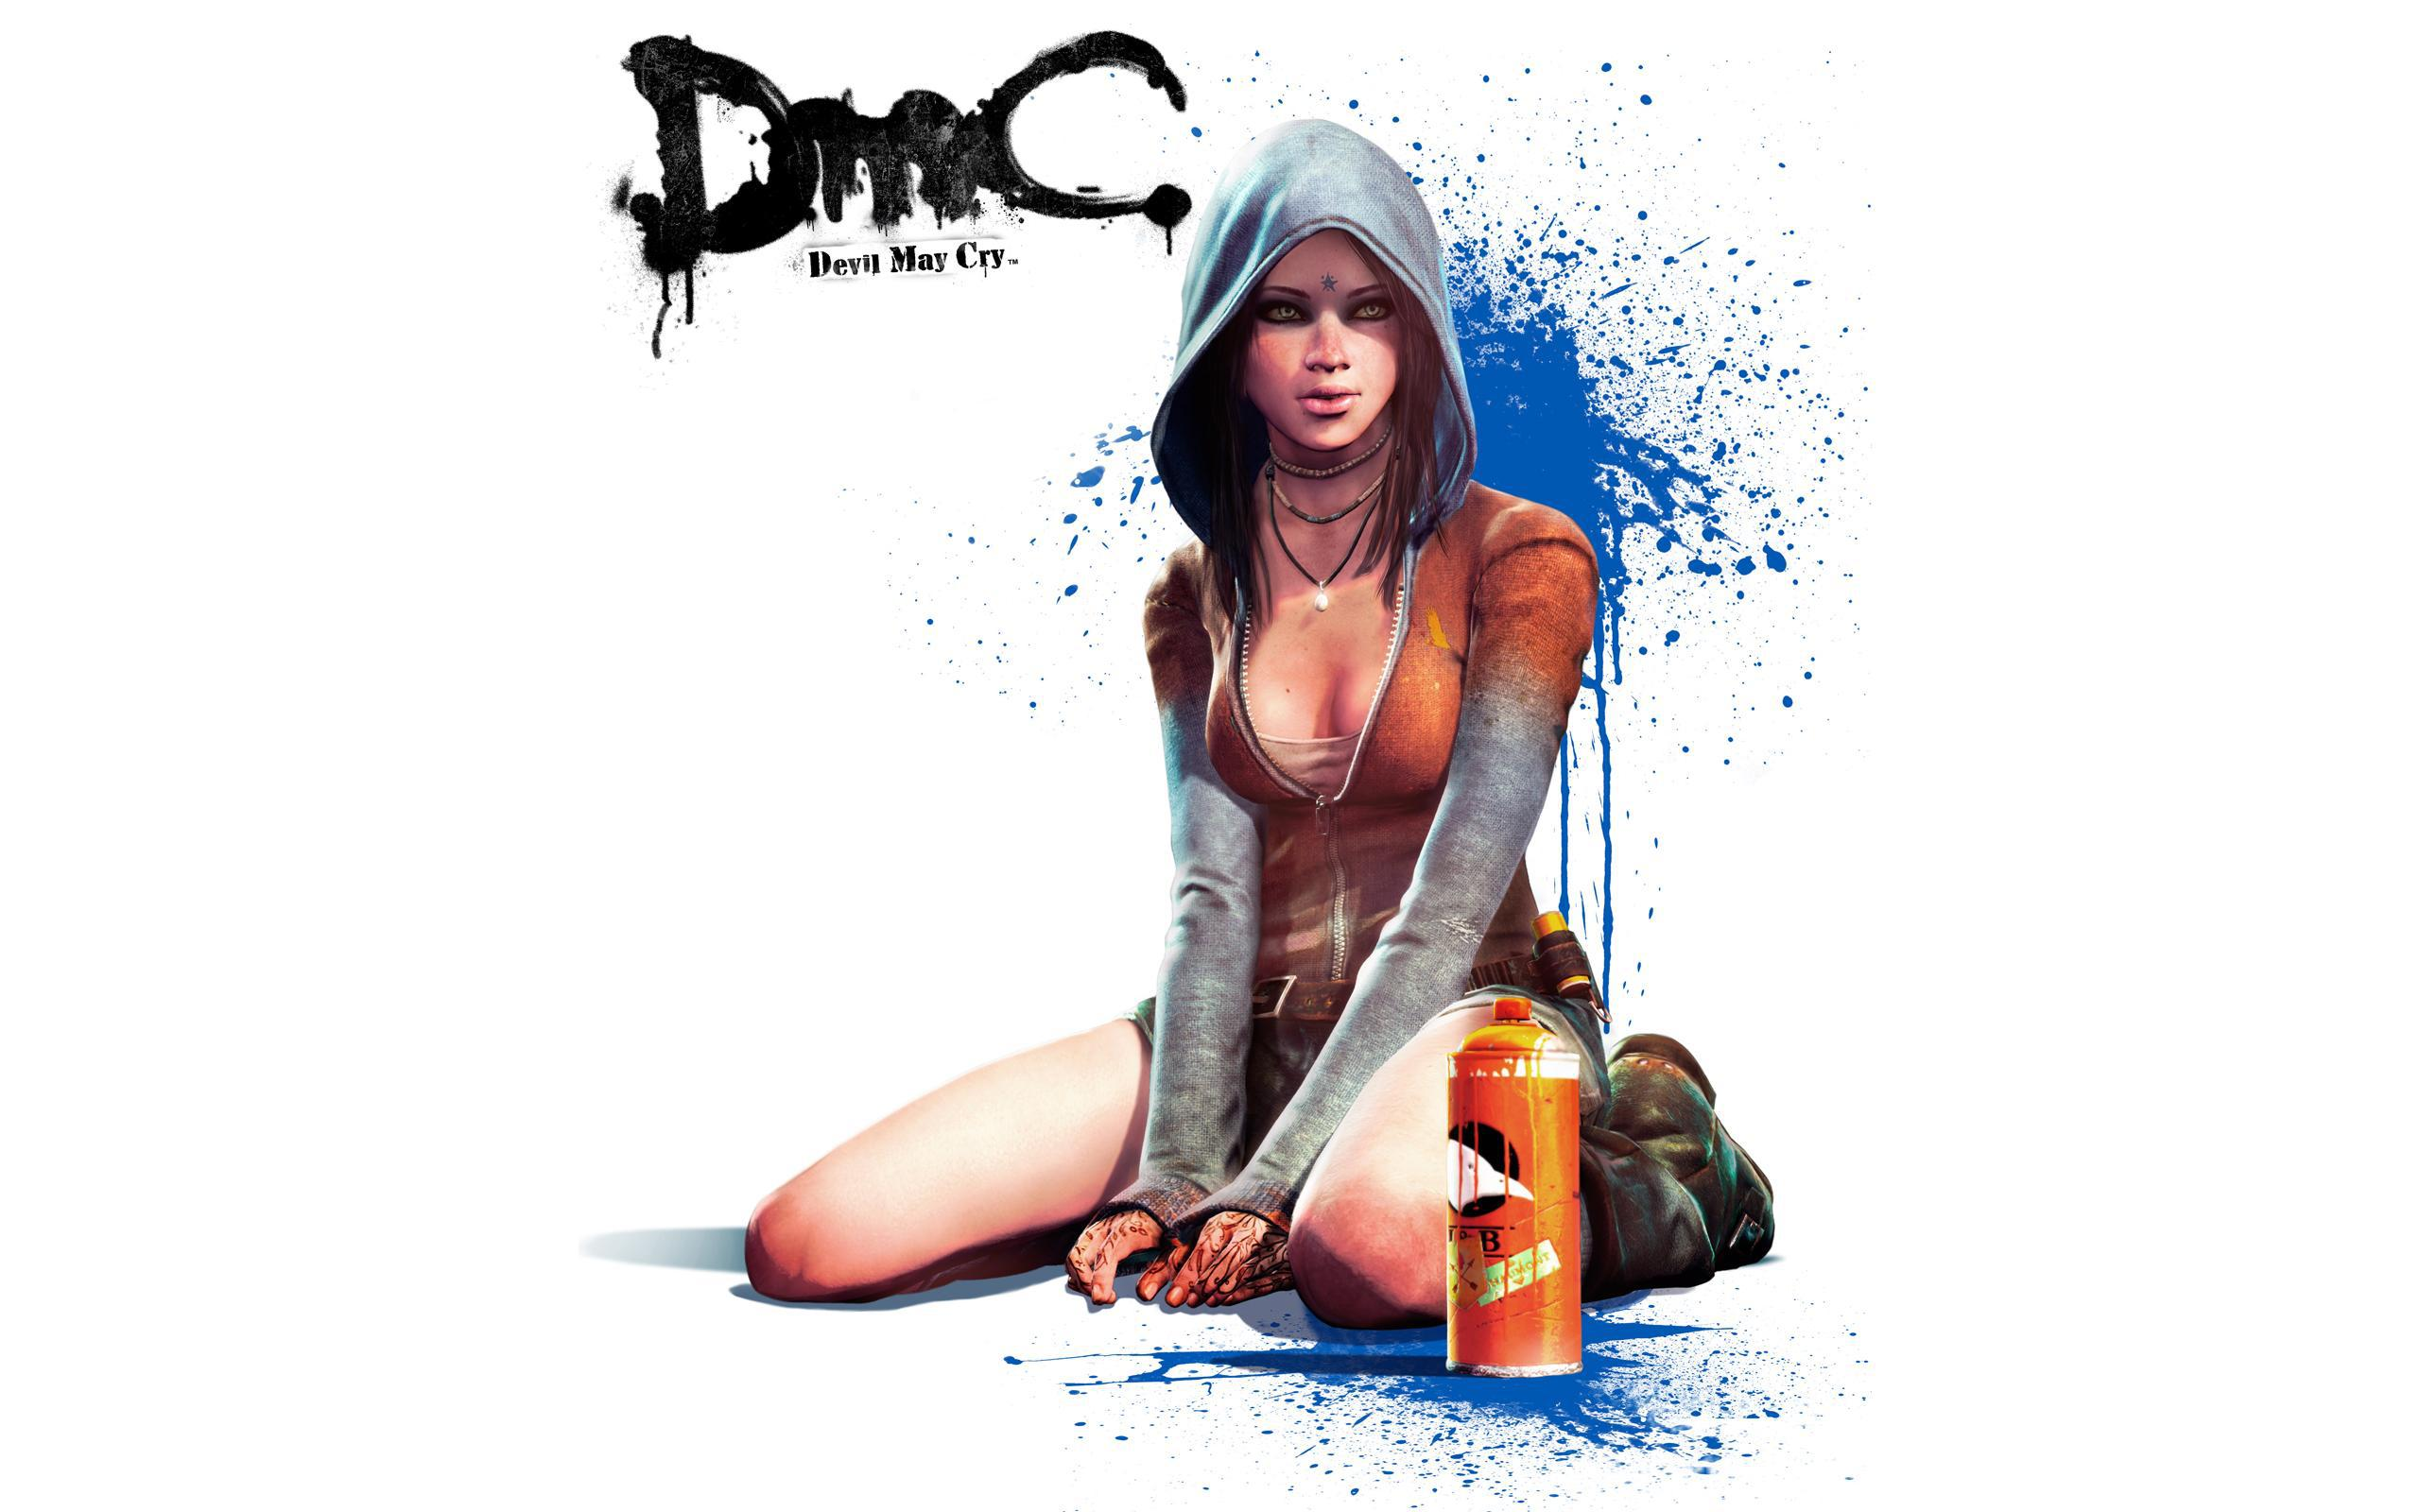 Devil May Cry Girl